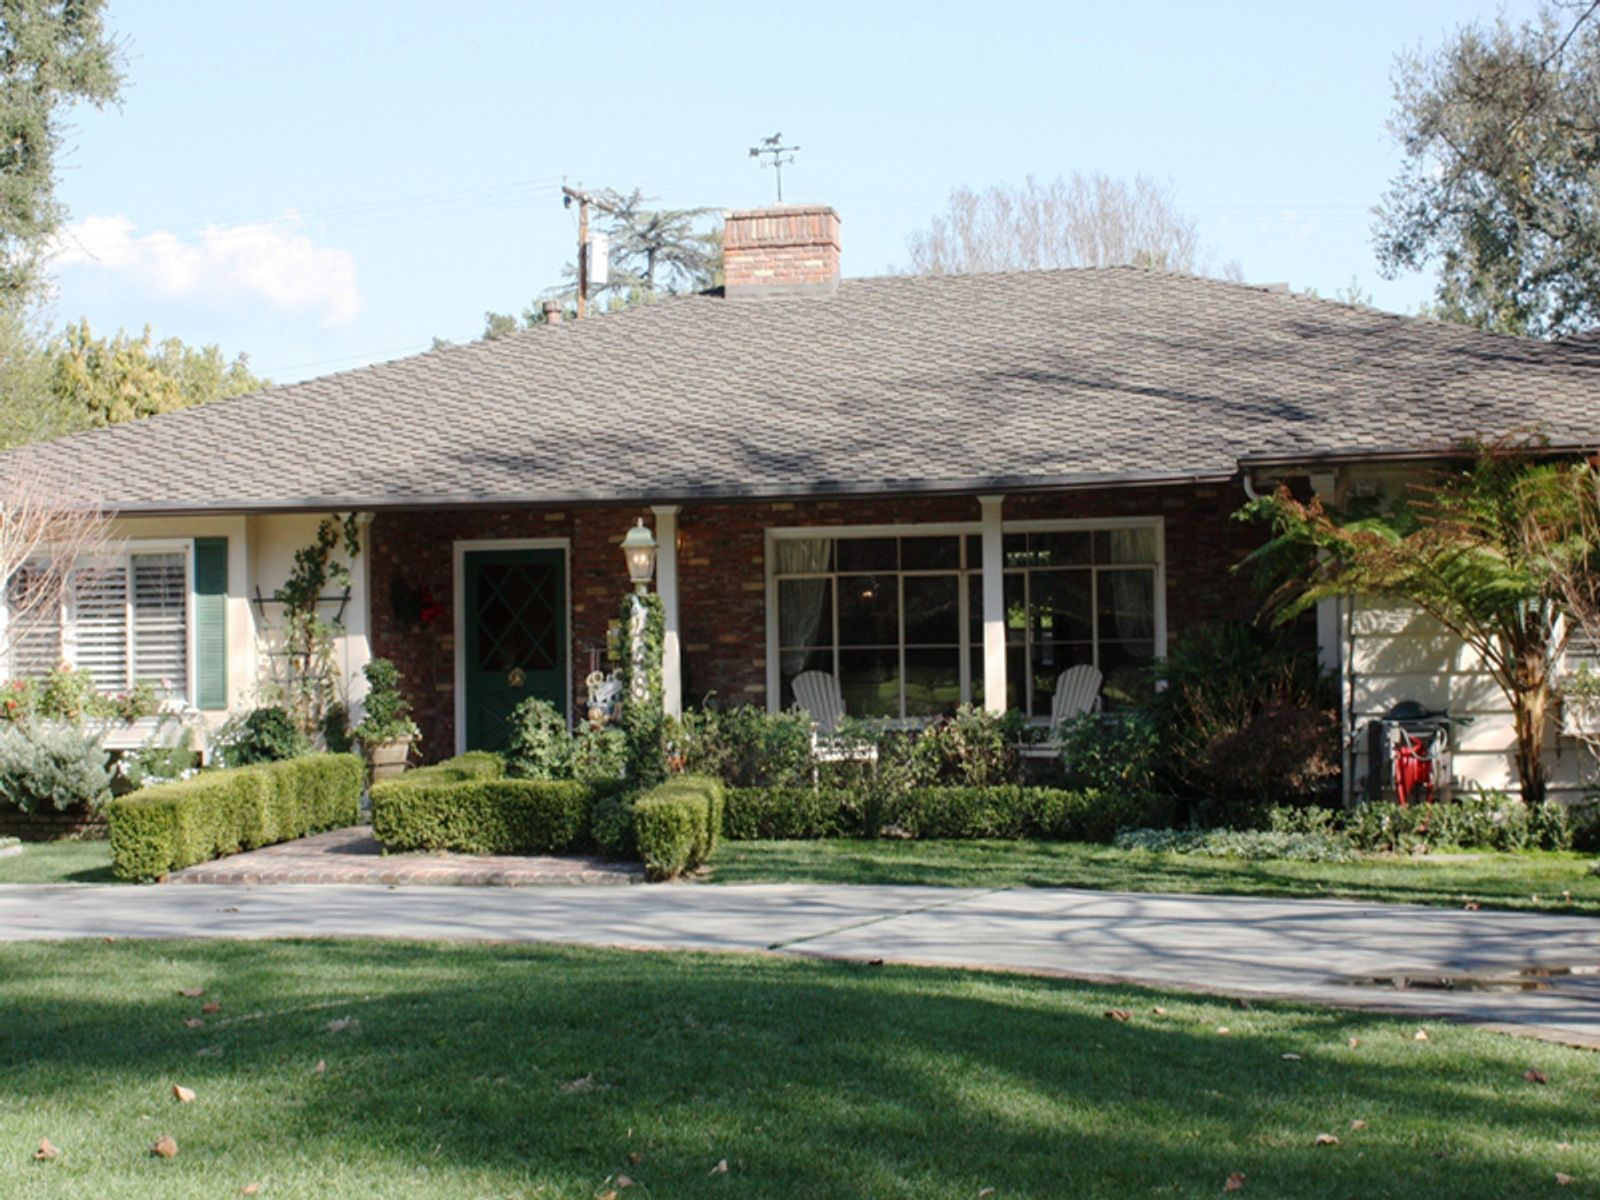 Overlooks San Gabriel Country Club, San Gabriel CA Single Family Home - Pasadena Real Estate